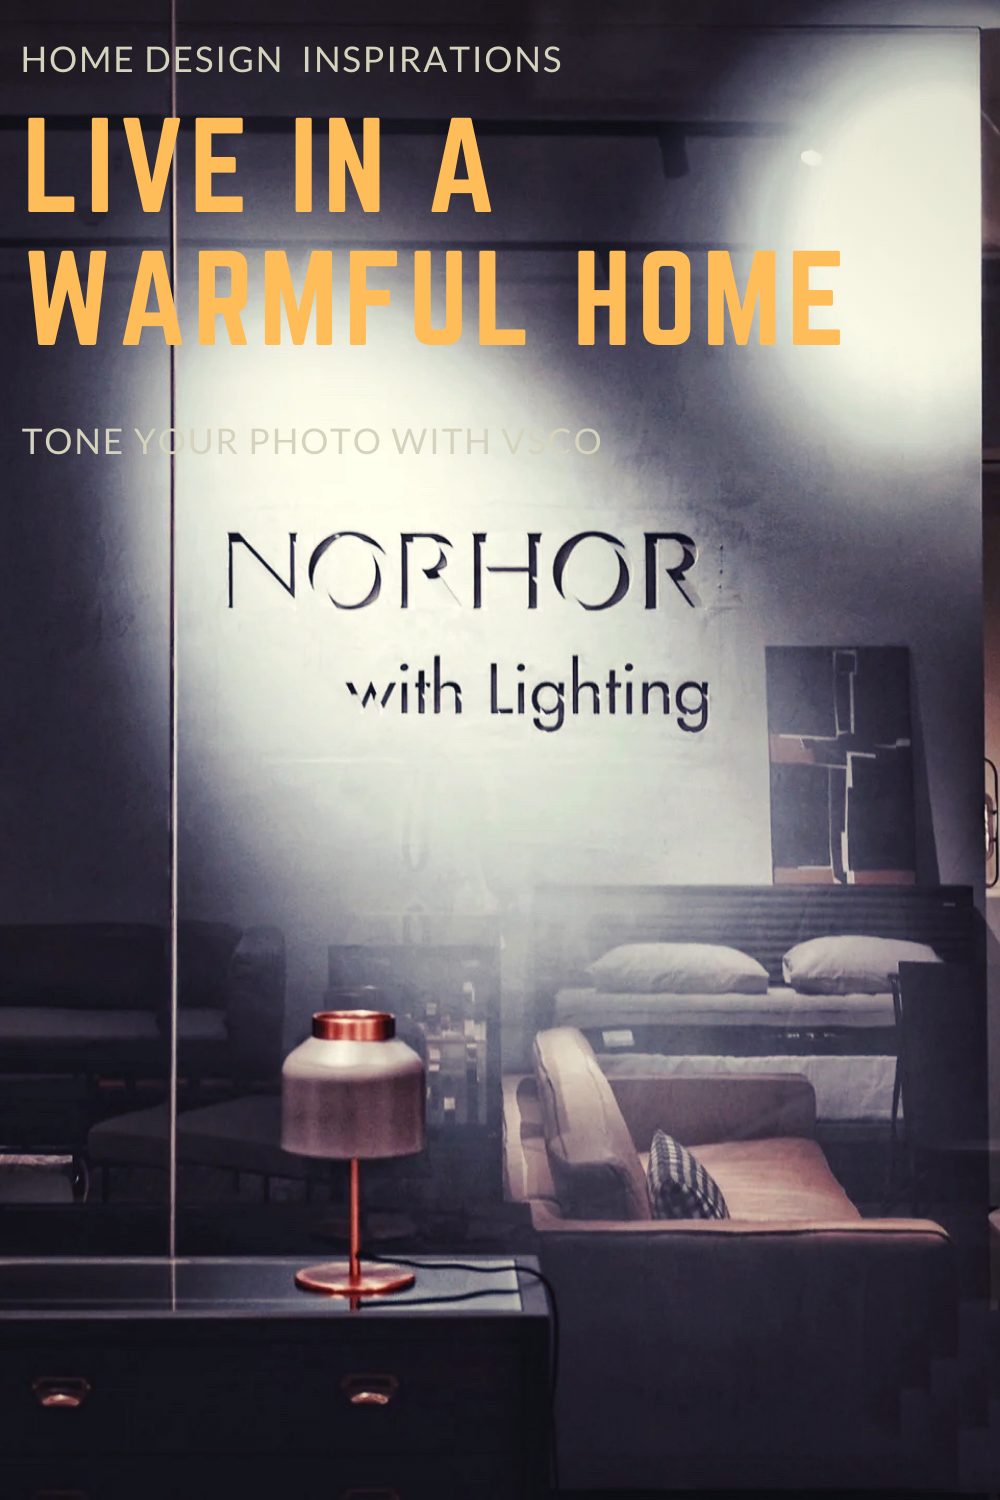 Imagine you are sleeping in a high-quality design home now, can you believe this can be true just by your phone and toning? Let's see what we can do to make our photo become cooler than before! #sleepbetter#sleep#sleepzone#design#toning#homelove